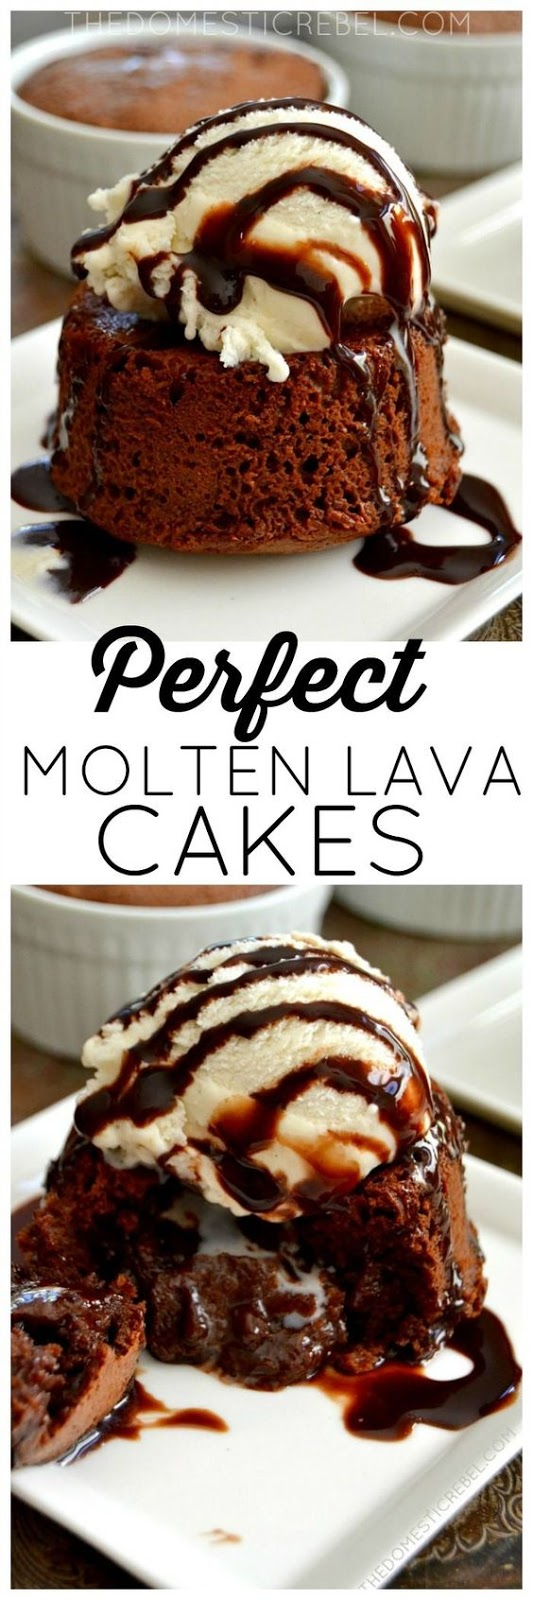 Perfect Molten Lava Cakes